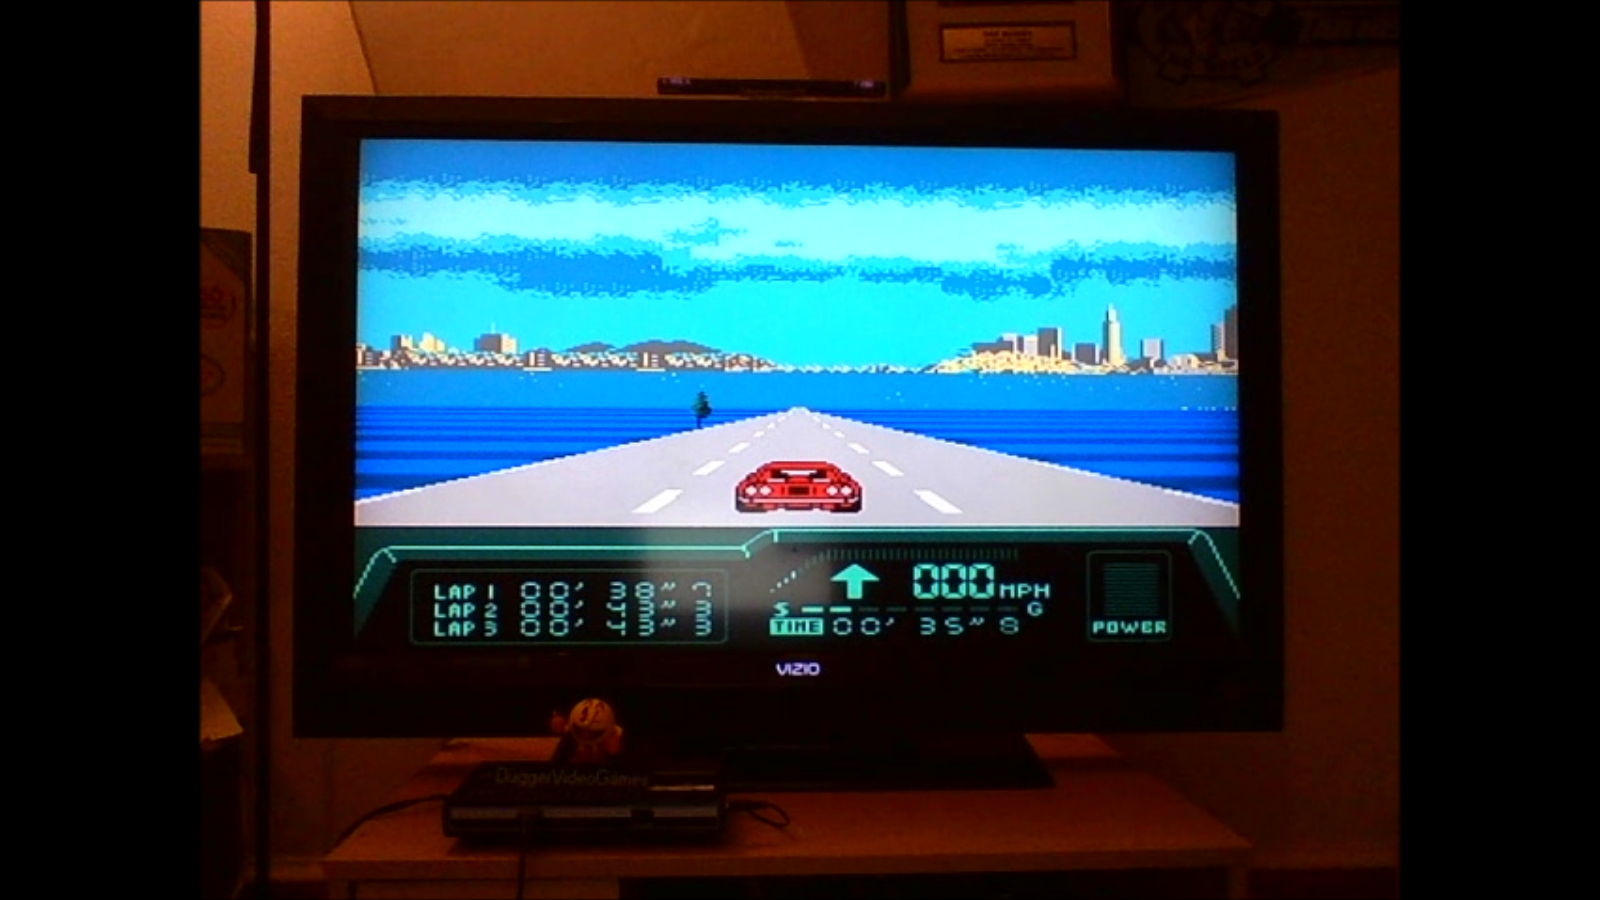 DuggerVideoGames: Rad Racer 2: Stage 8: Bay Bridge [Fastest lap] (NES/Famicom Emulated) 0:00:38.7 points on 2016-08-24 01:03:25